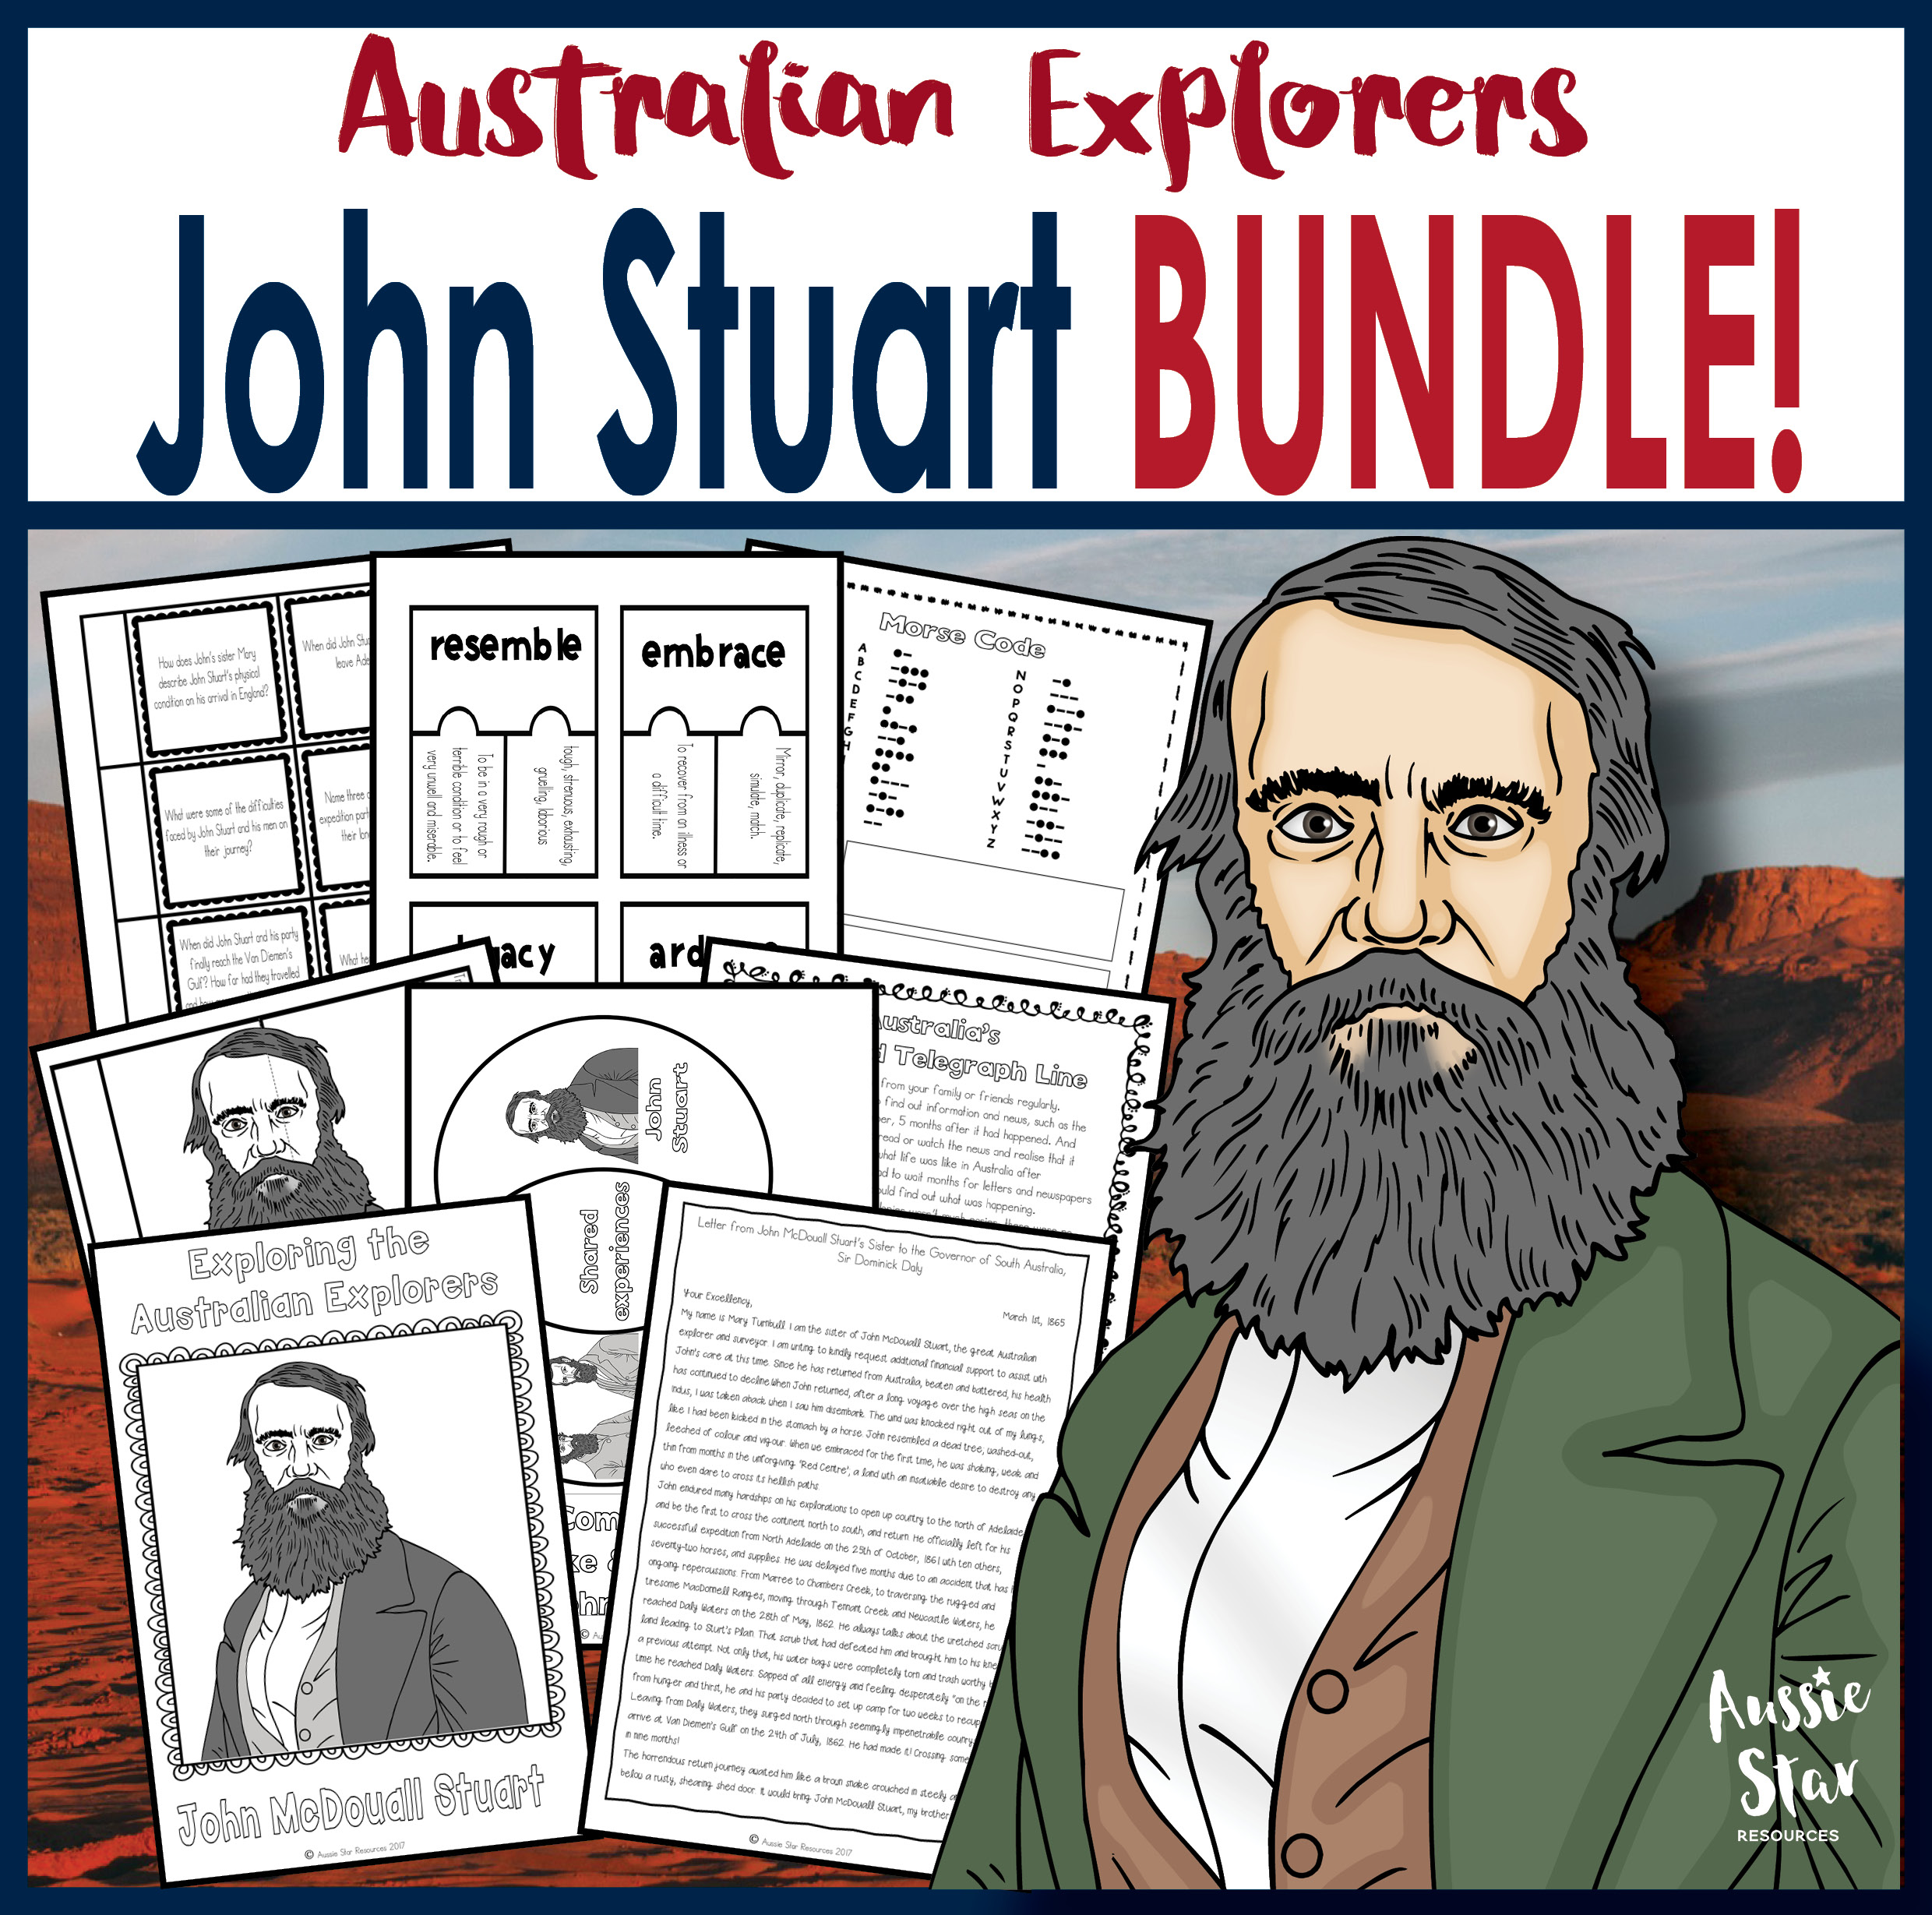 John Stuart bundle